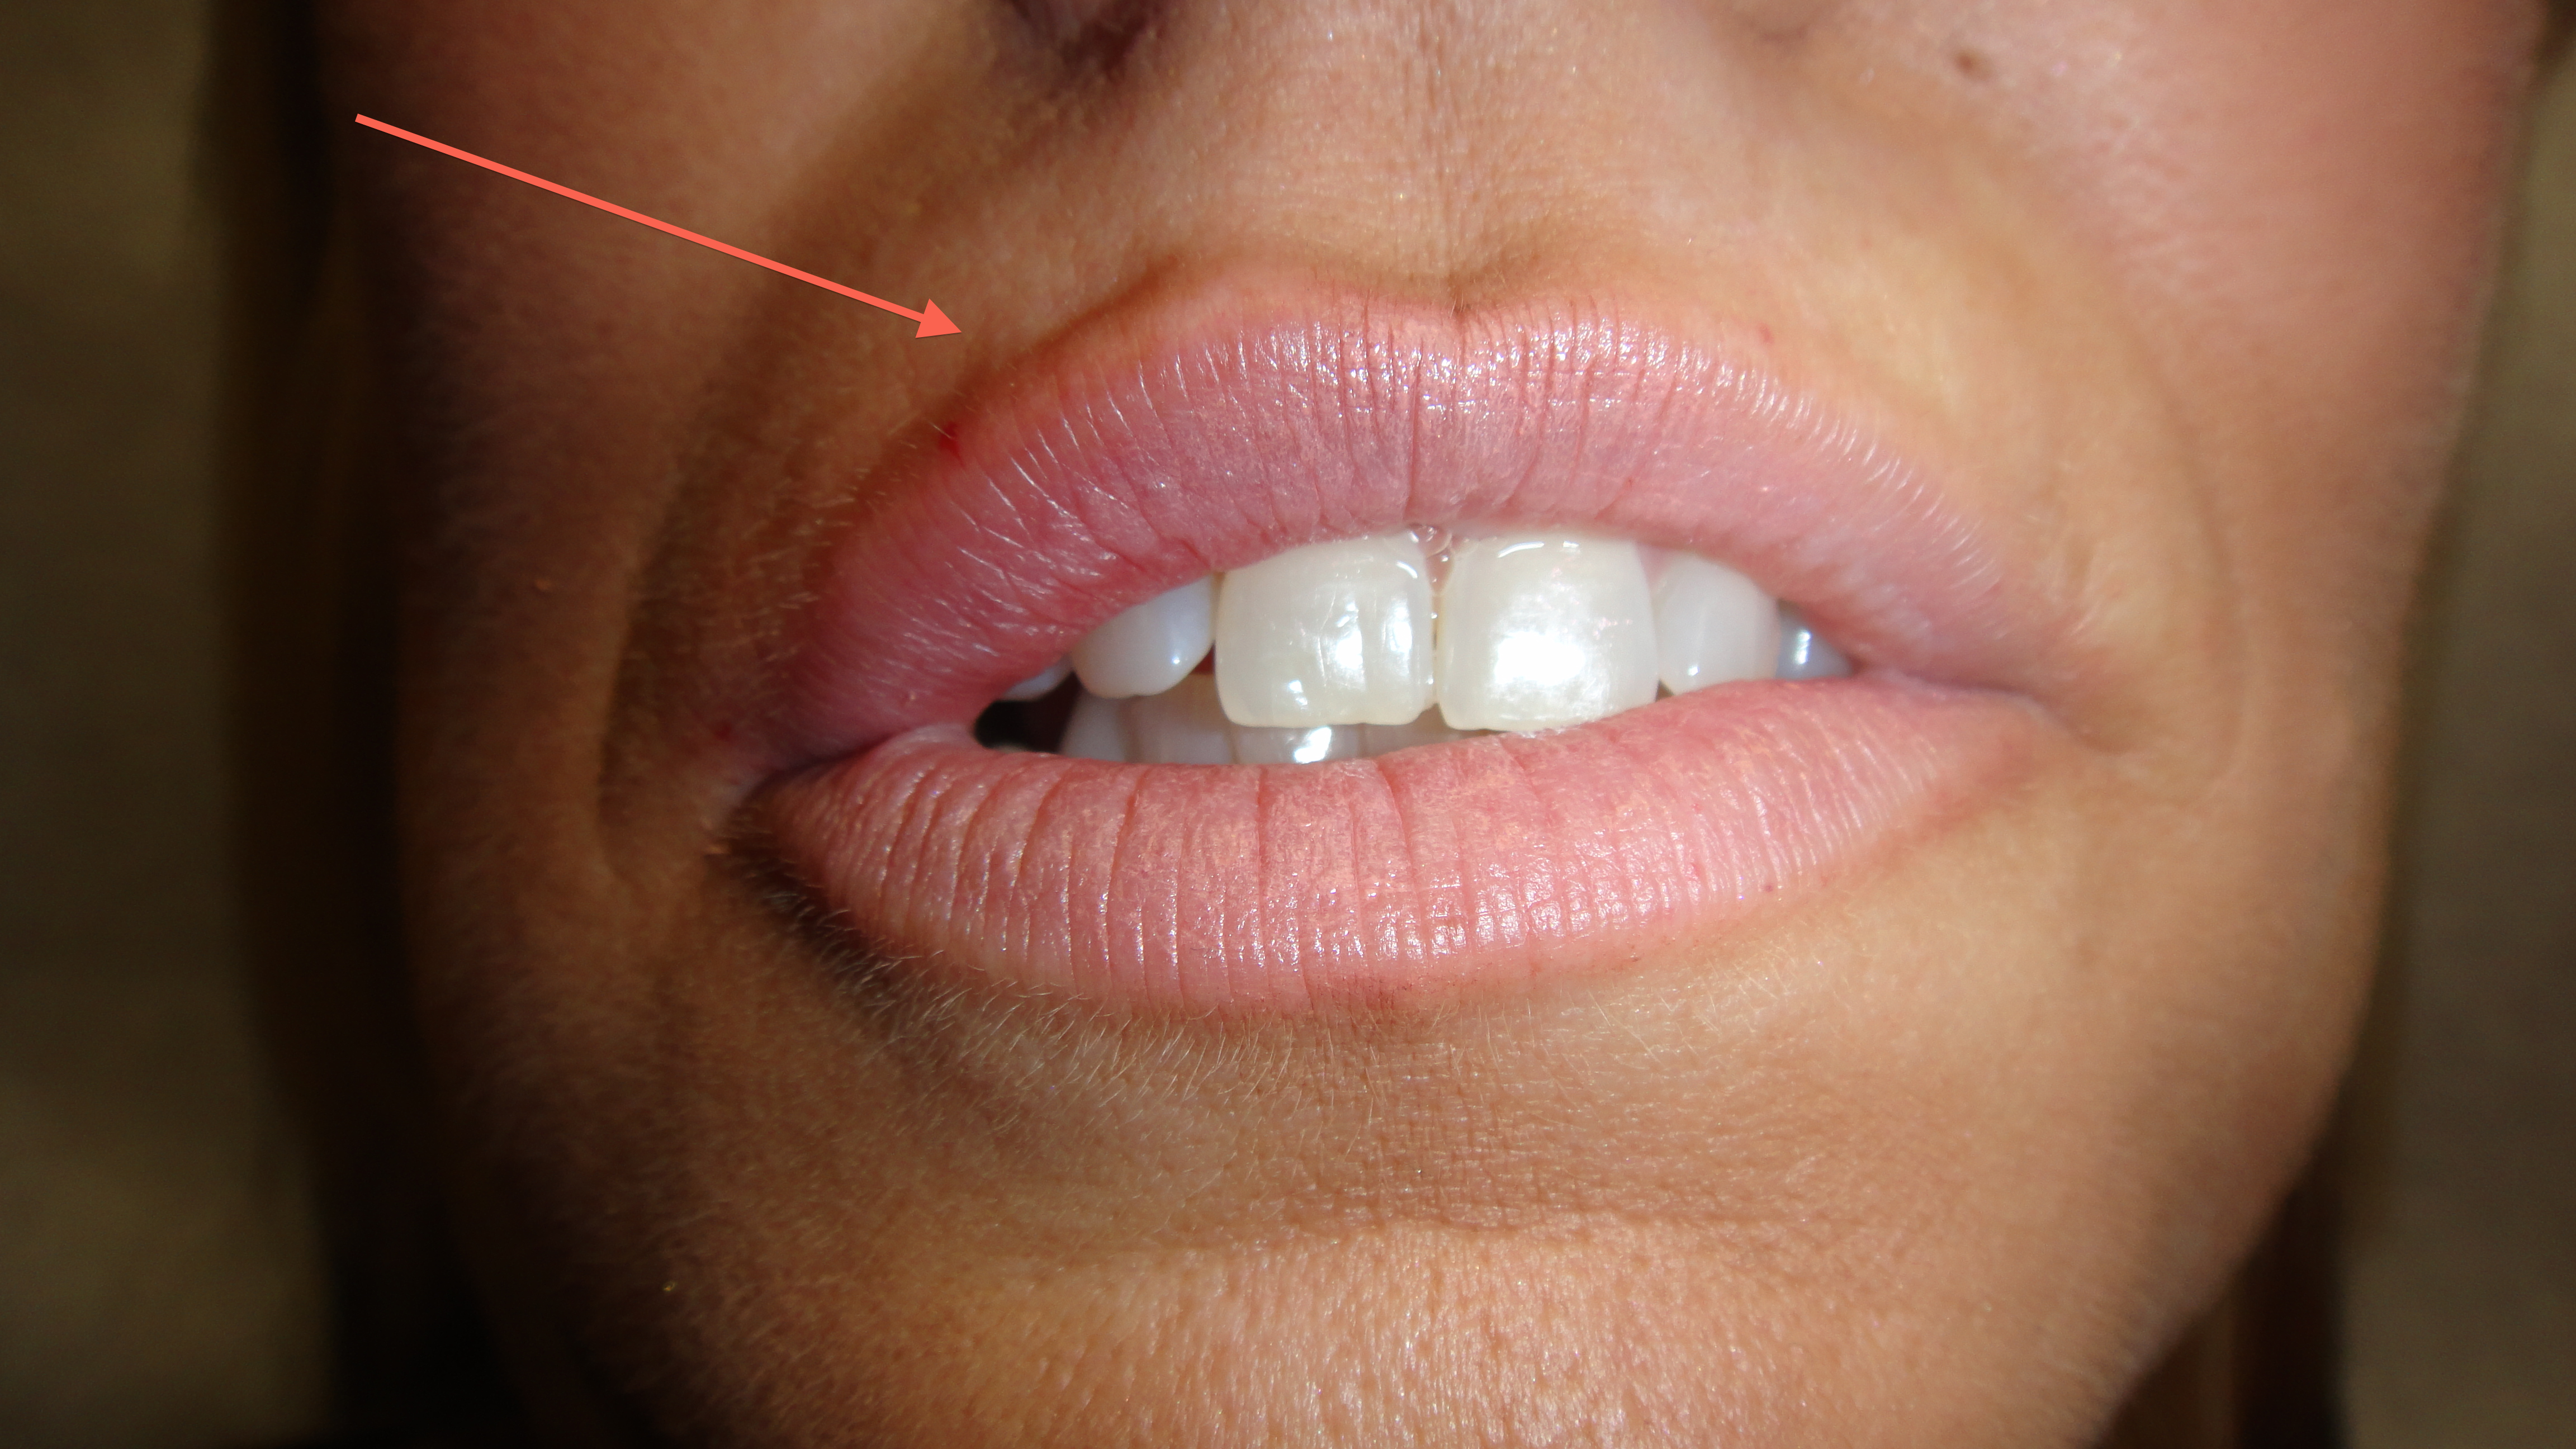 In this photo, you can see filler in one portion of the lip (arrow) with immediate results. Based on the patient's wants, you then inject a similar amount or more in the remaining portions of the lips.